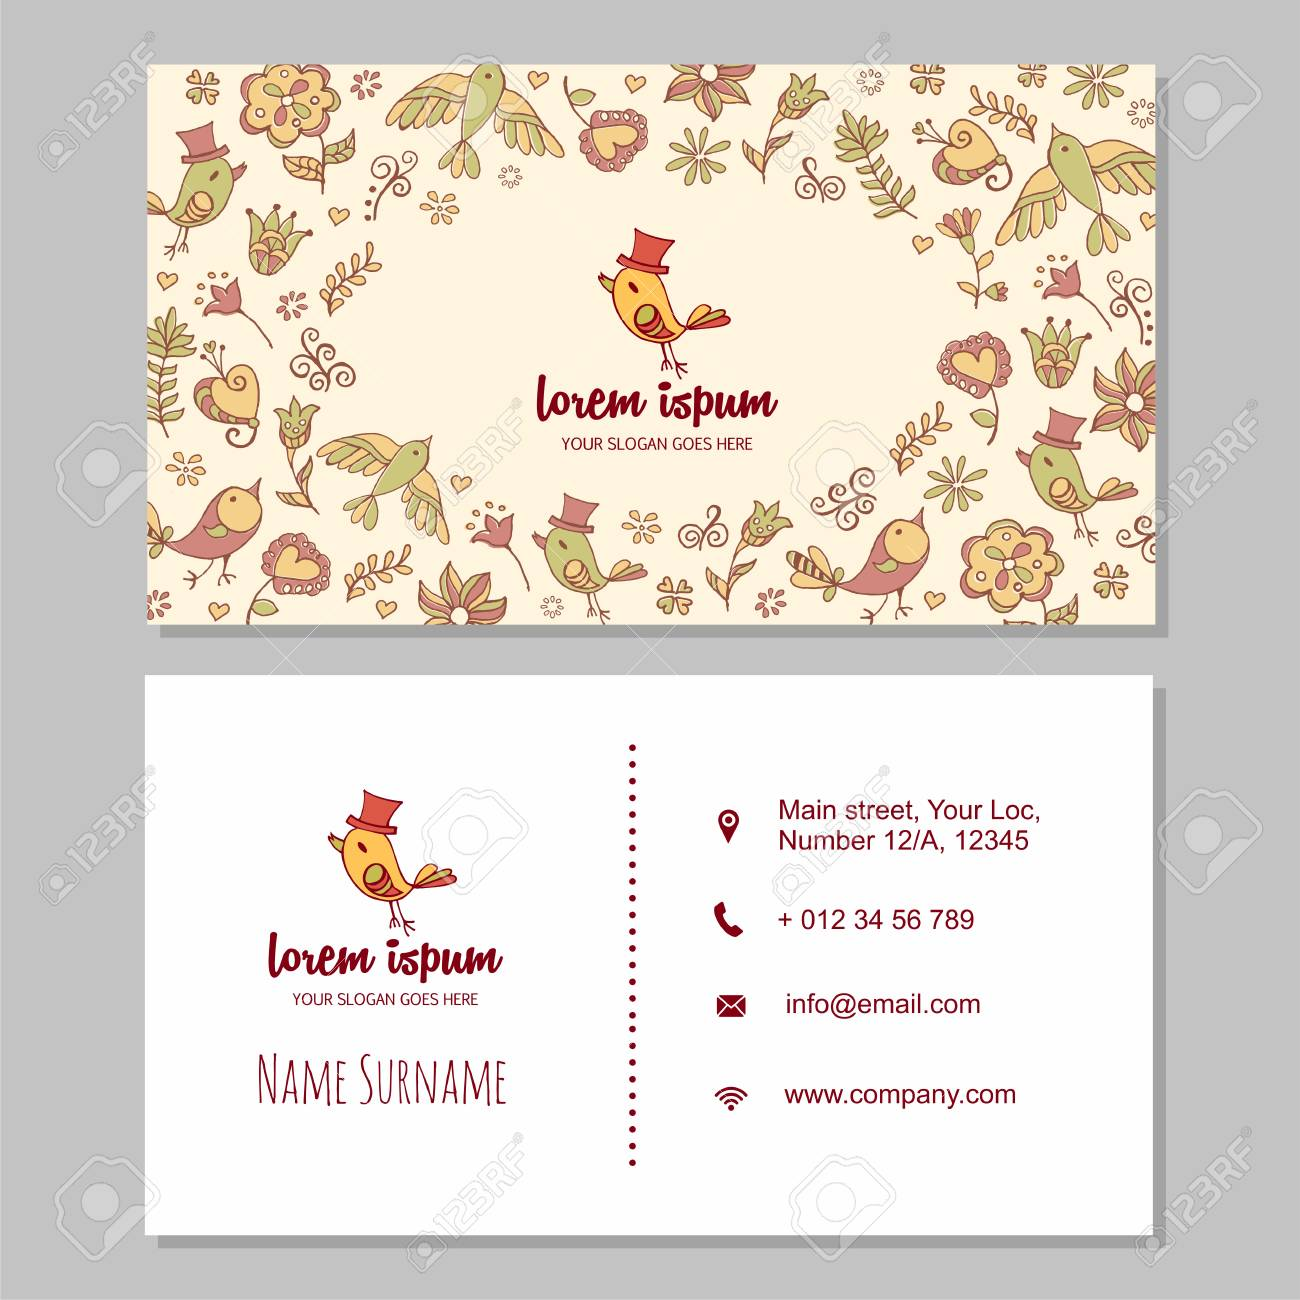 visiting card or business card set with cute hand drawn logo